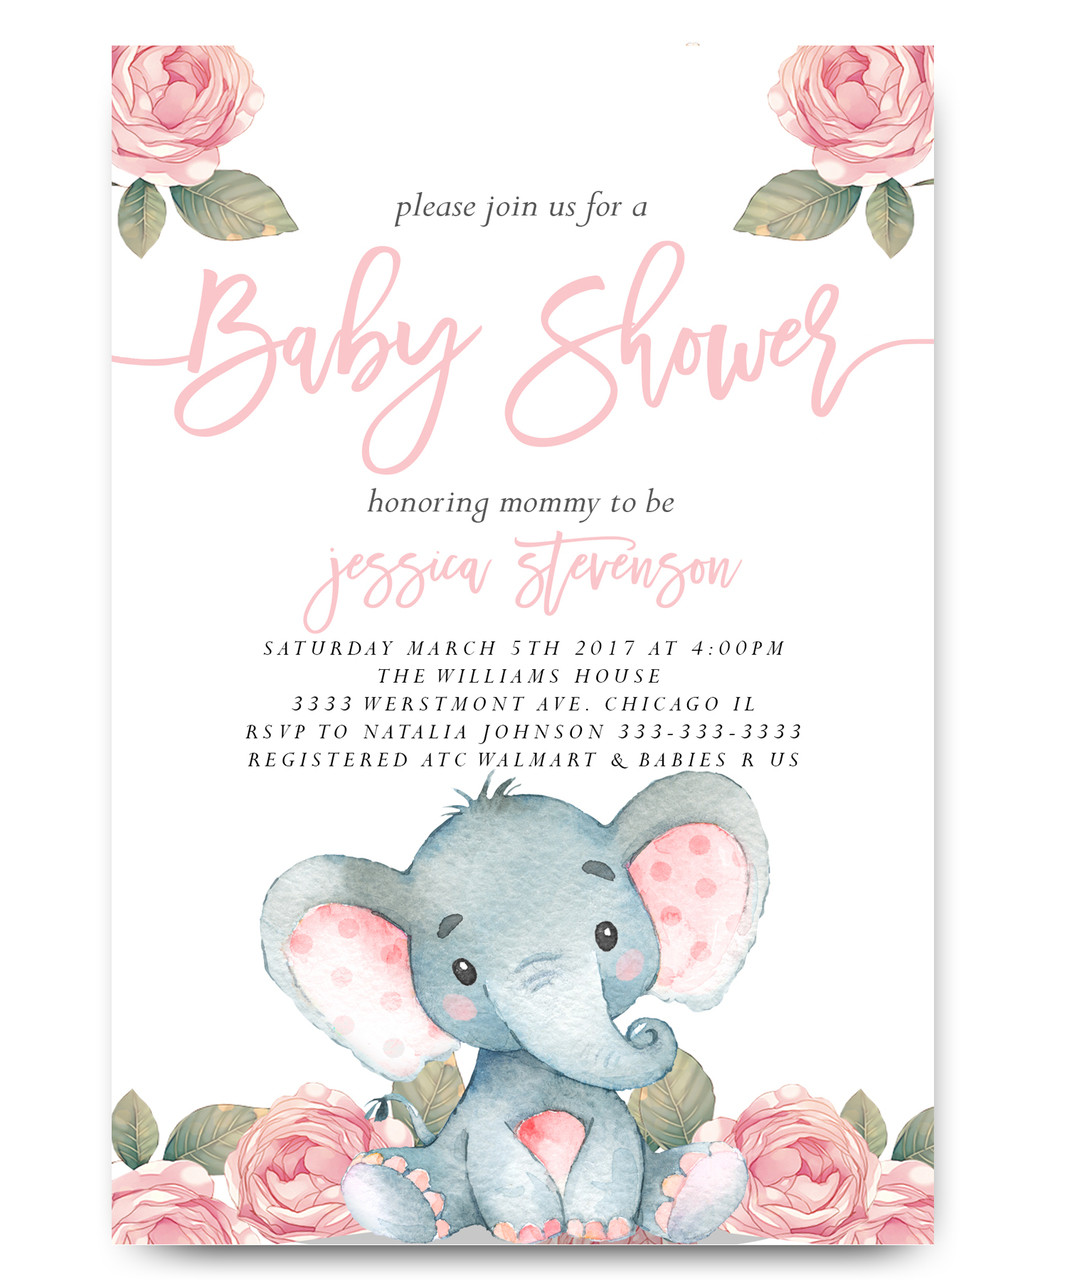 Elephant baby shower invitation watercolor flowers elephant baby shower invitationelephant with flowers elephant pink elephant vintage elephant filmwisefo Images